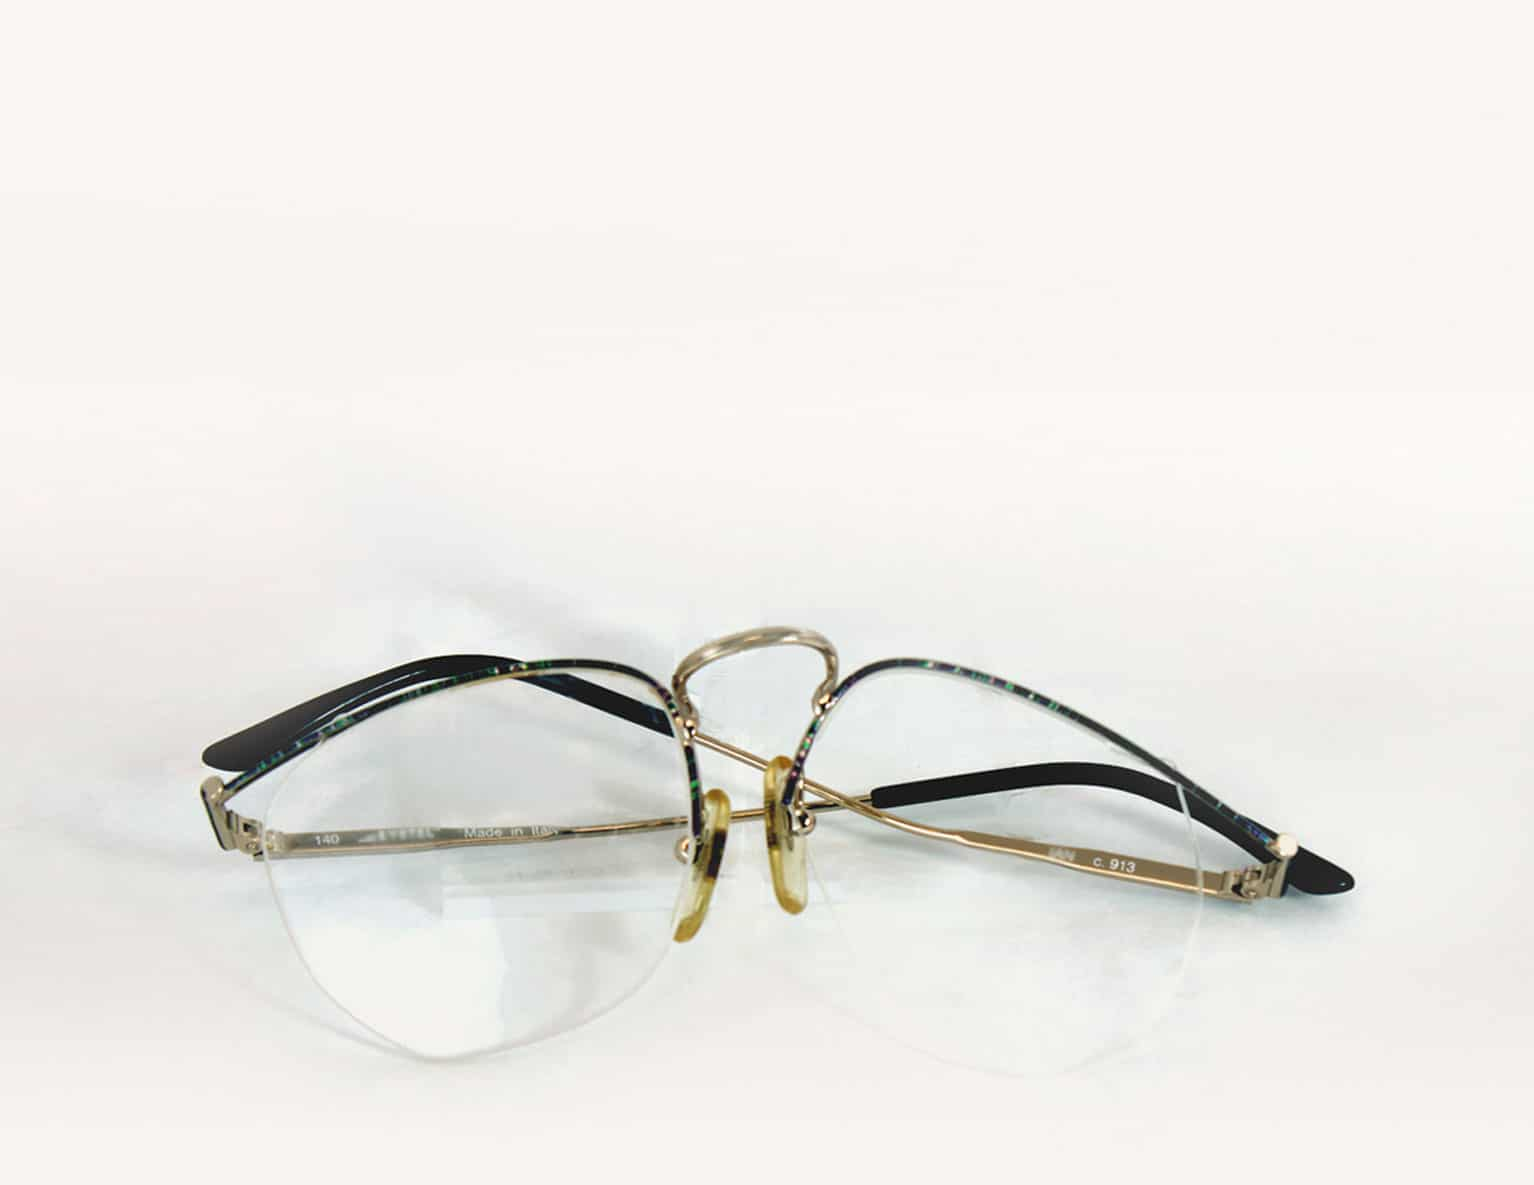 Overhauling Rimless Glasses